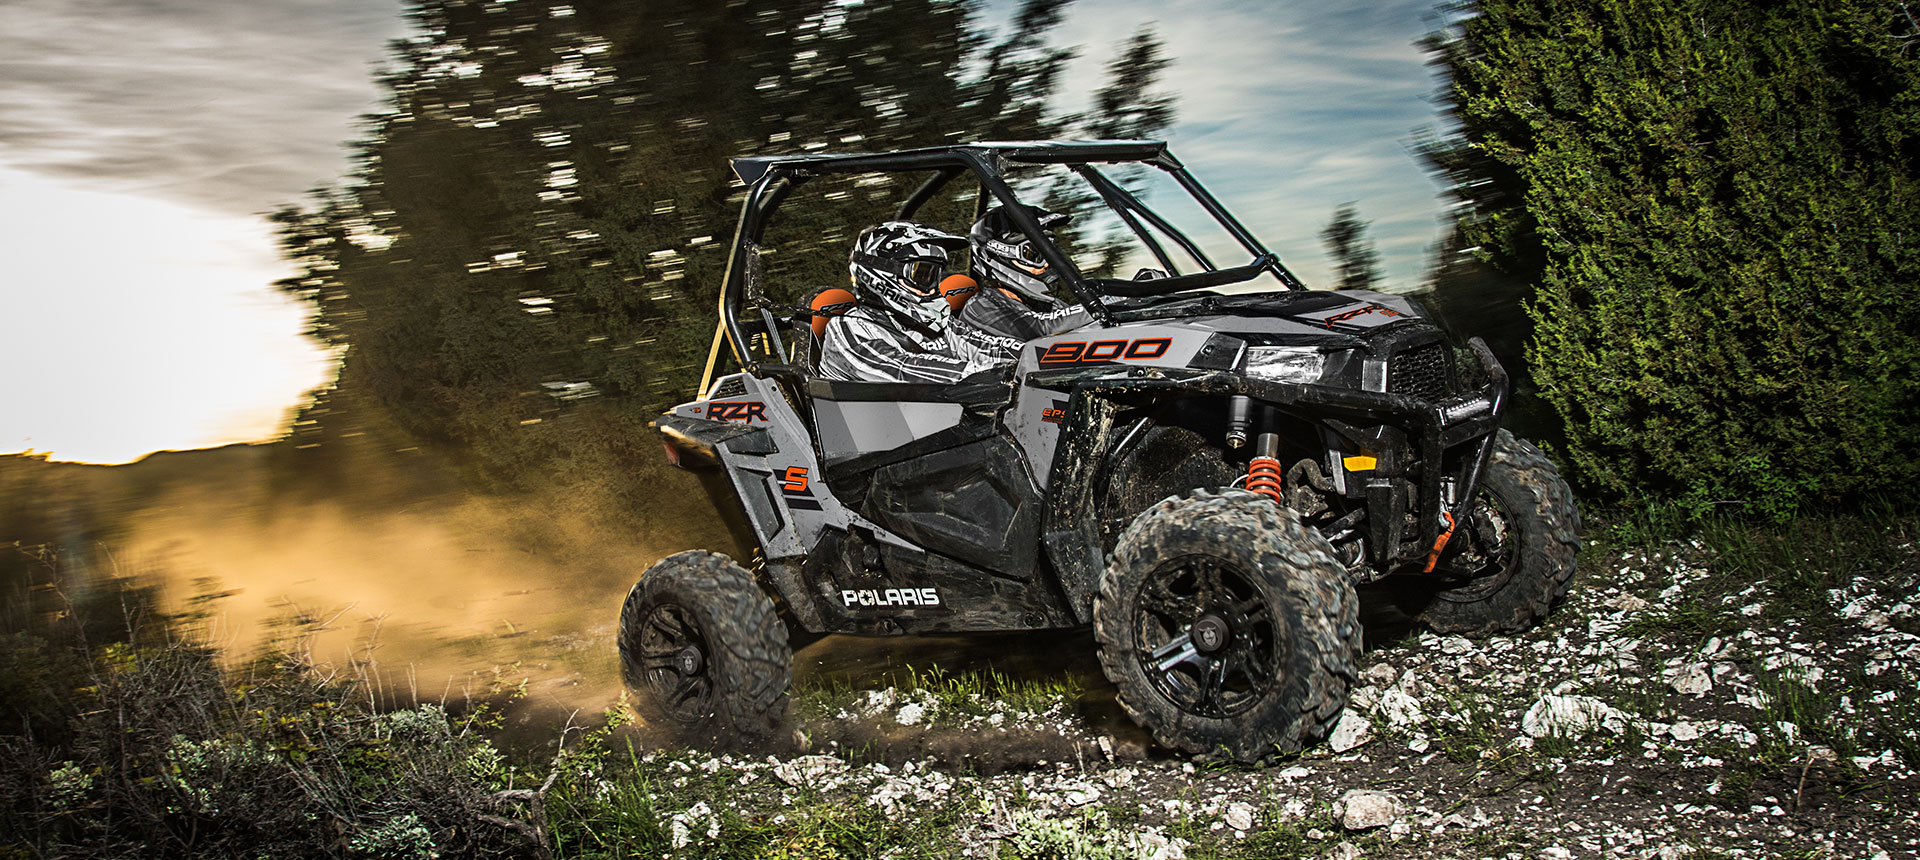 2019 Polaris RZR S 900 in Marietta, Ohio - Photo 6